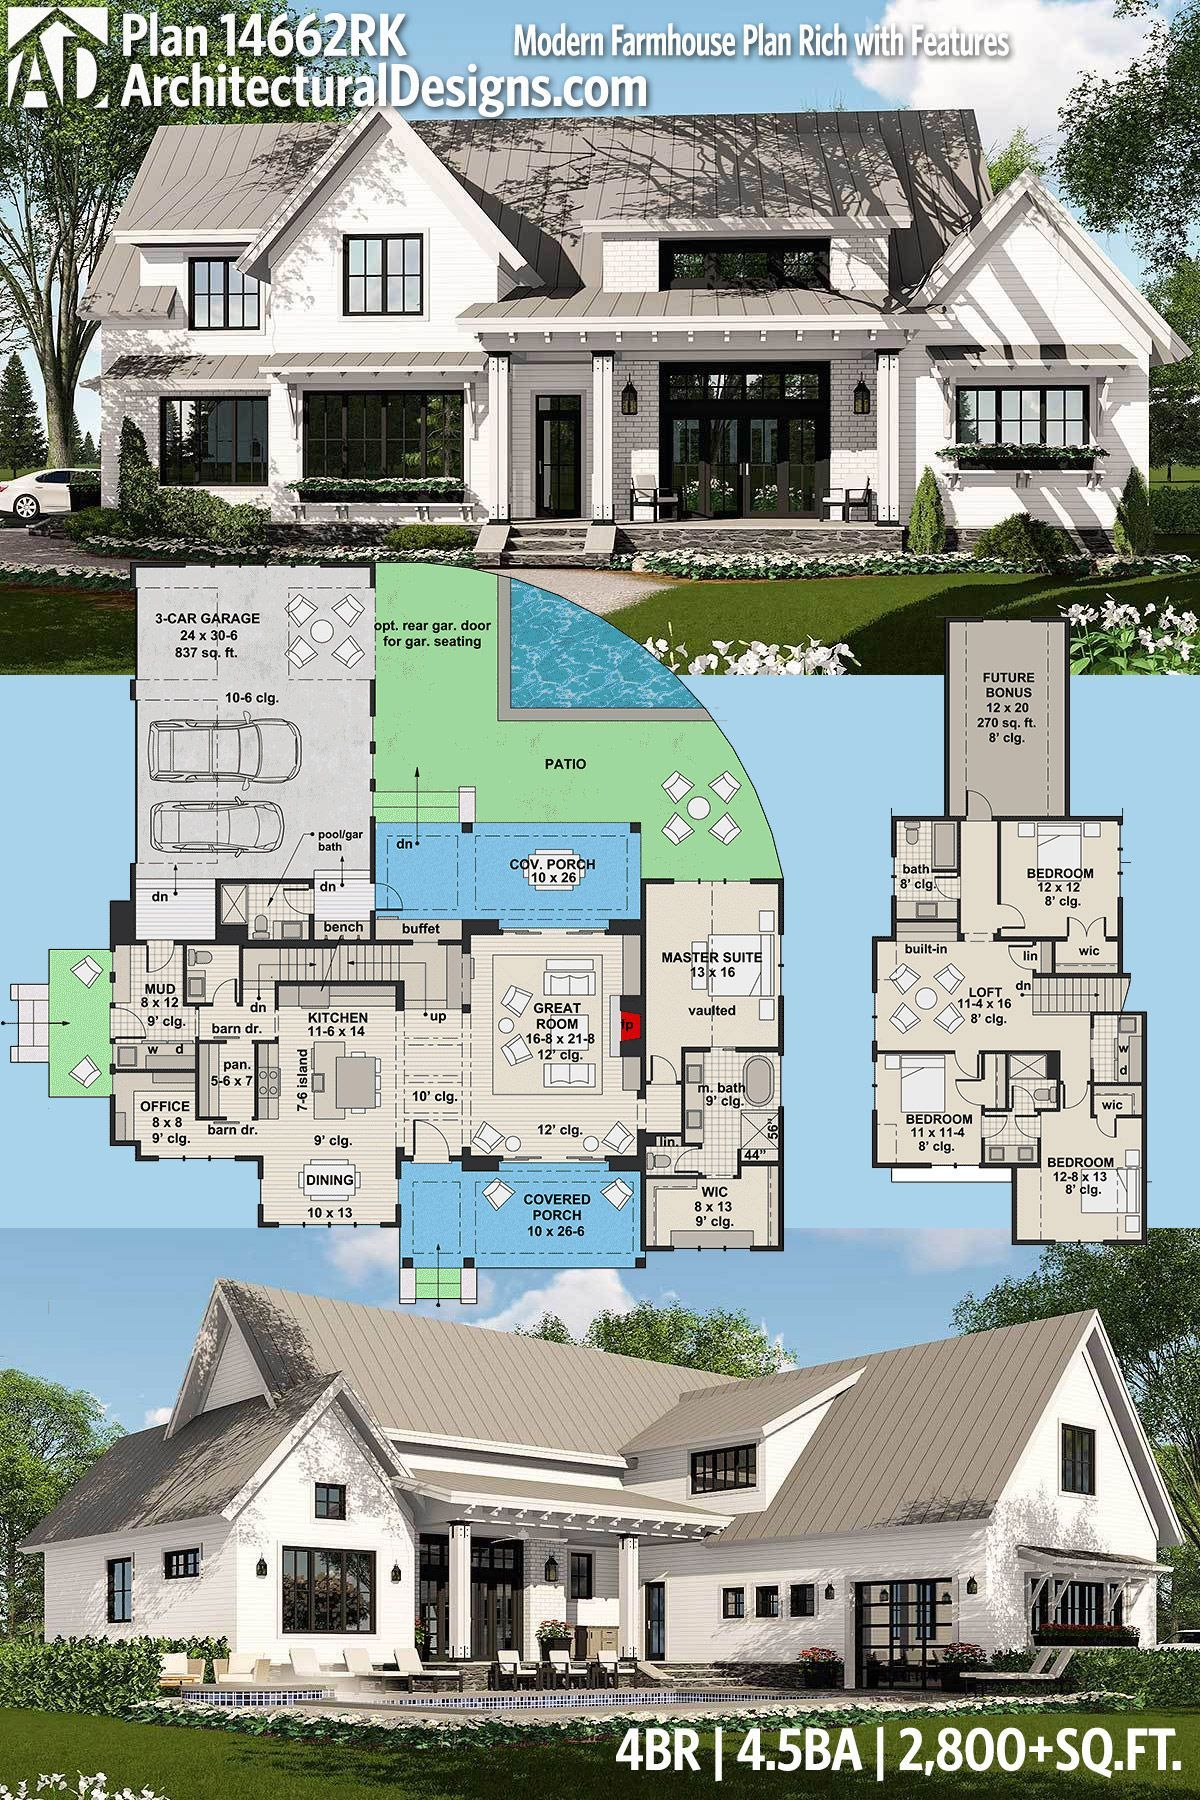 Architectural Designs Modern Farmhouse Plan 14662rk Gives You 4 Beds 4 5 Baths And Over 2 8 Modern Farmhouse Plans House Plans Farmhouse Farmhouse Floor Plans